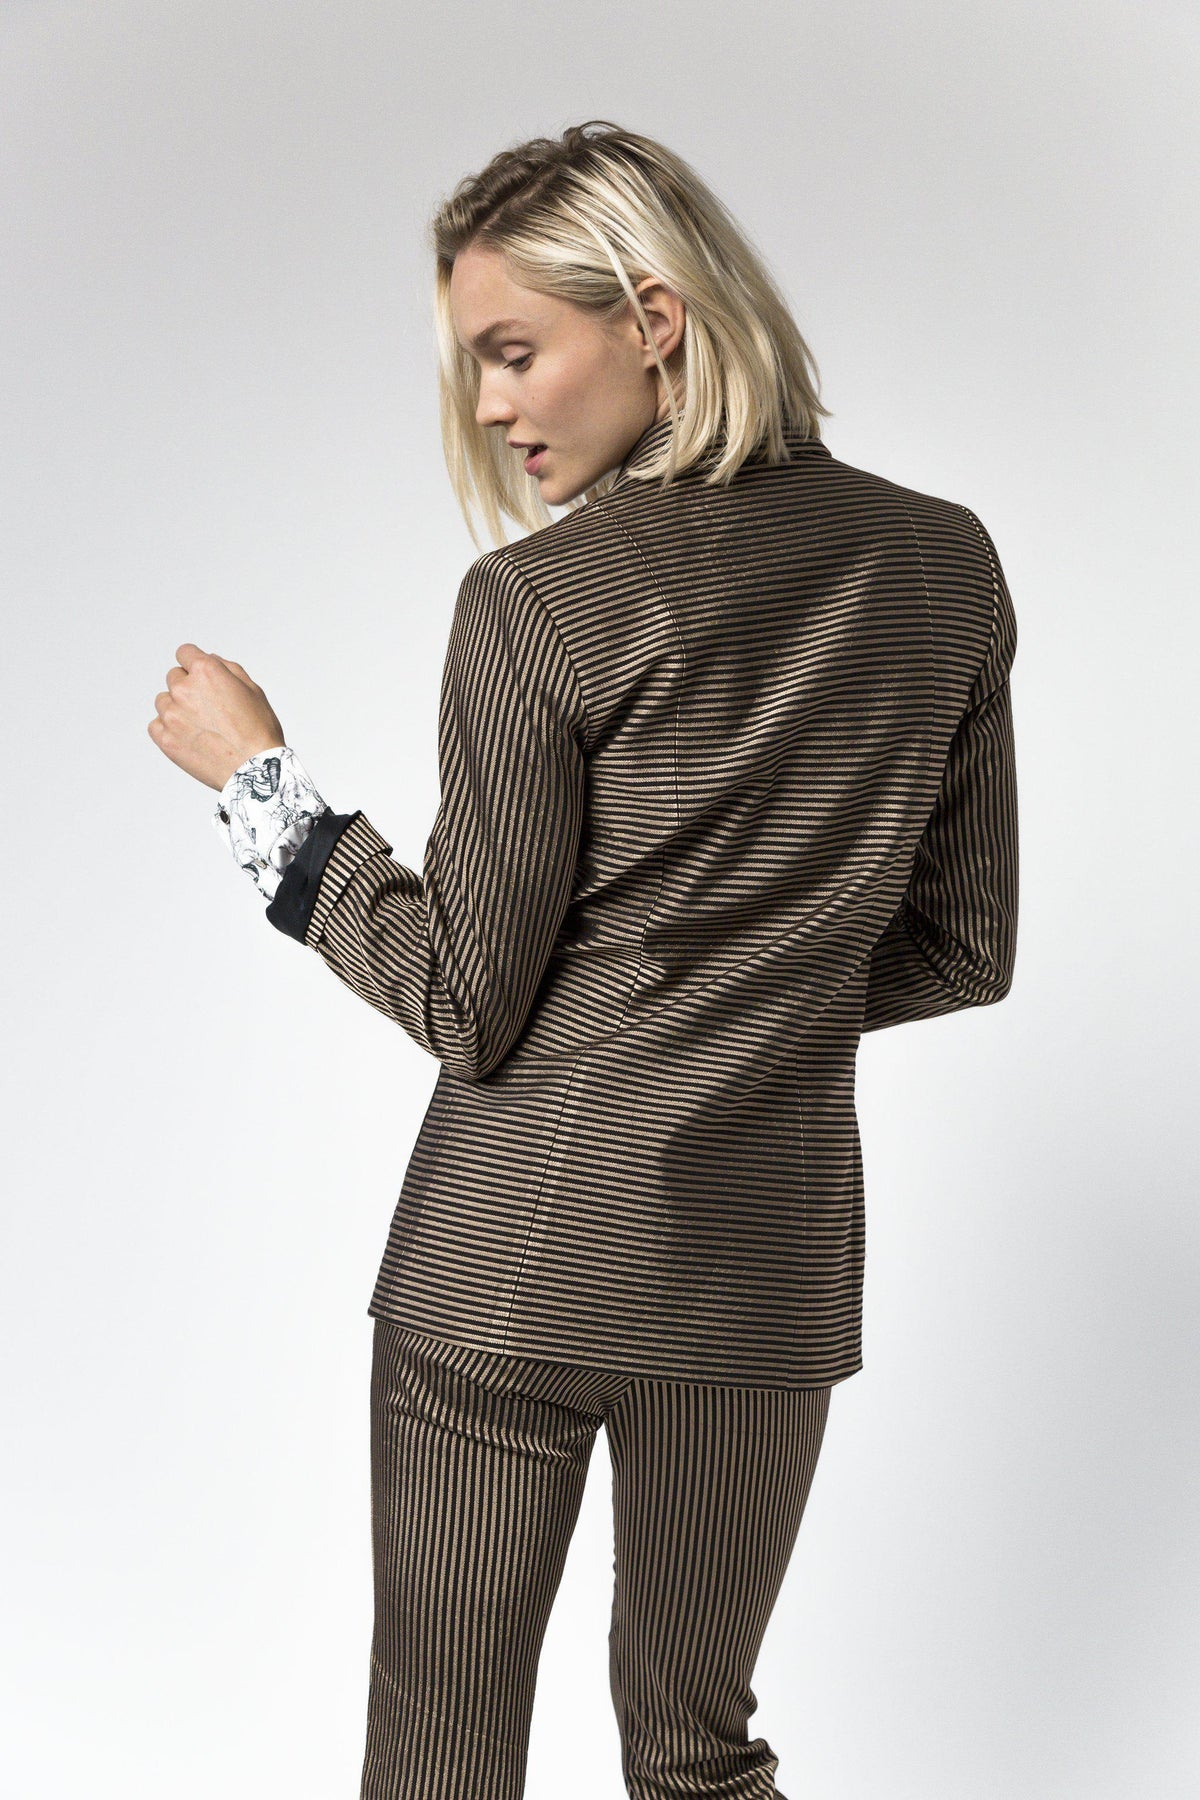 Sonny Crockett blazer in gold stripes